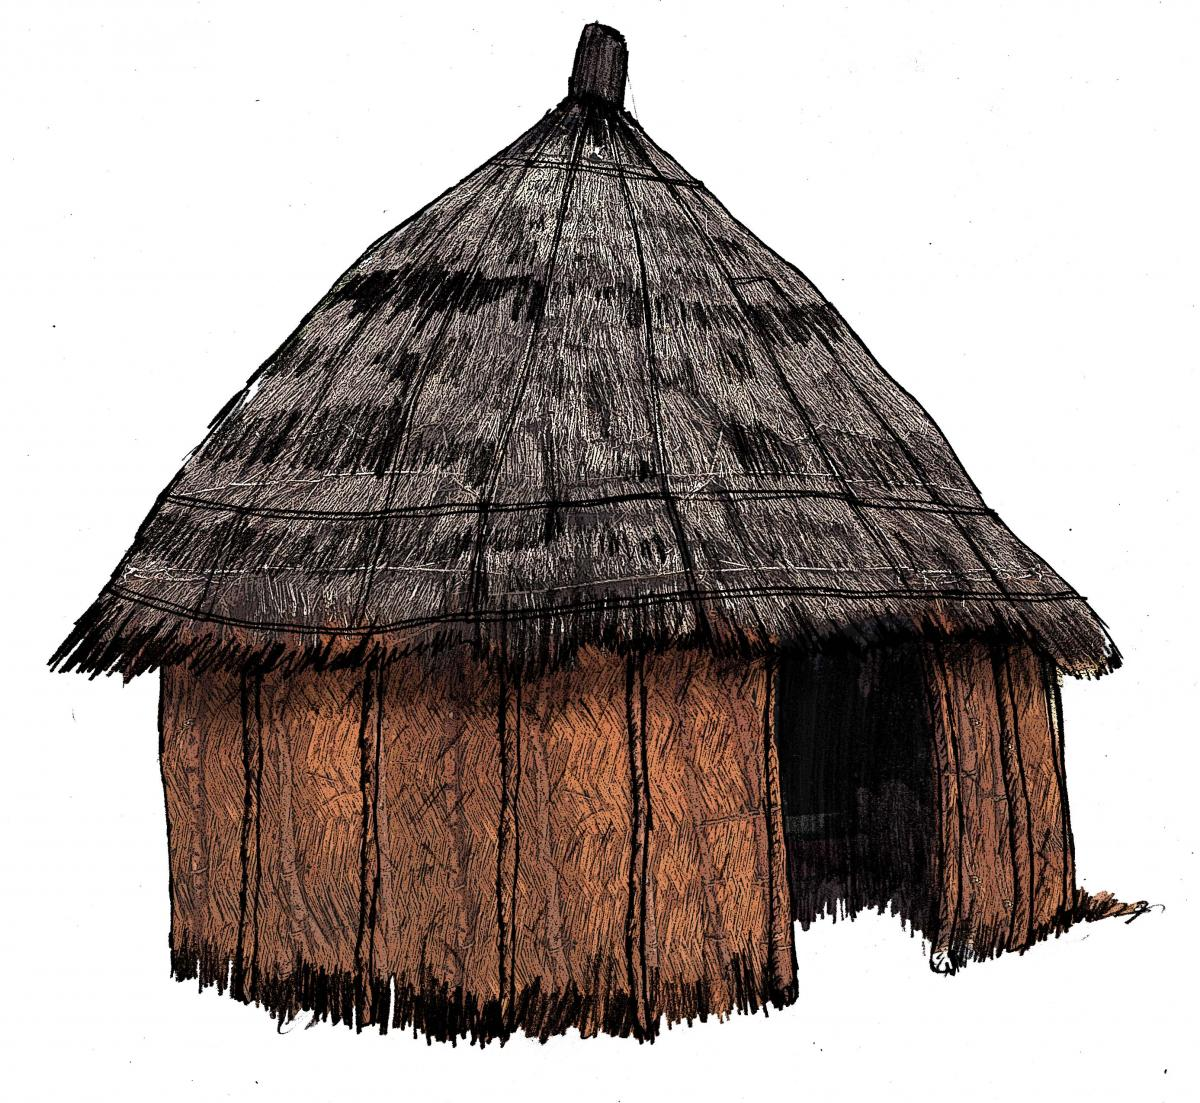 Objects - Hut - 01 - Nigeria